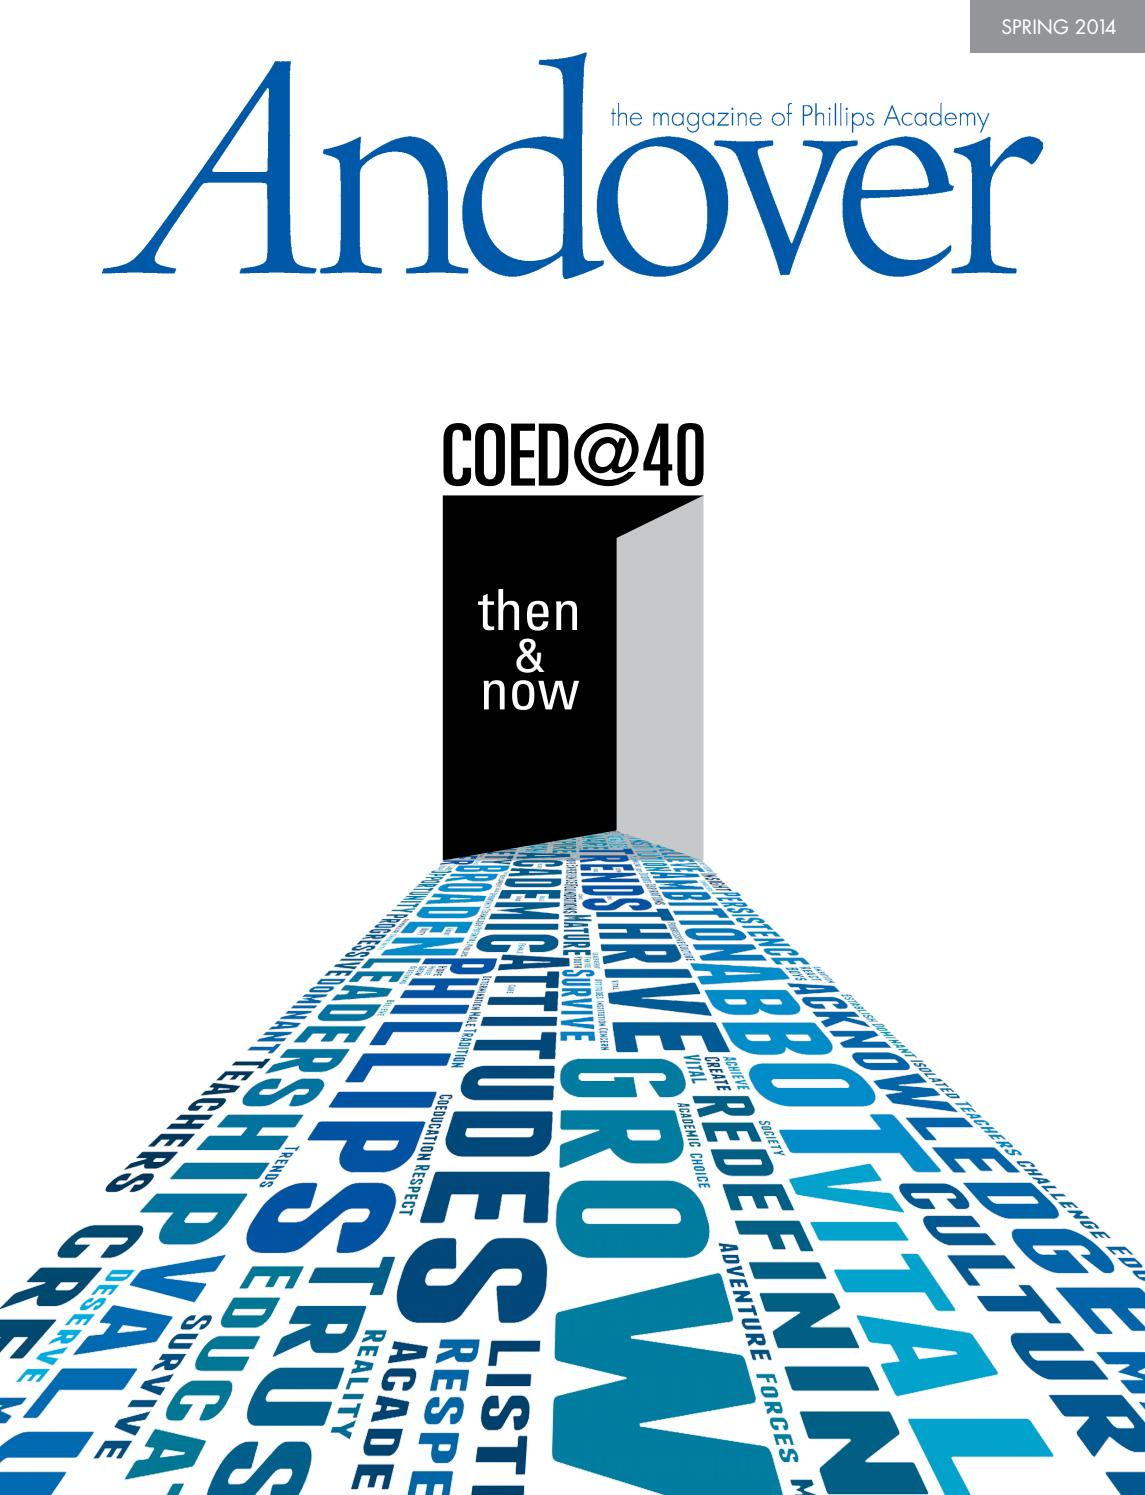 bd218bc971e9 Andover magazine  Spring 2014 by Phillips Academy - issuu